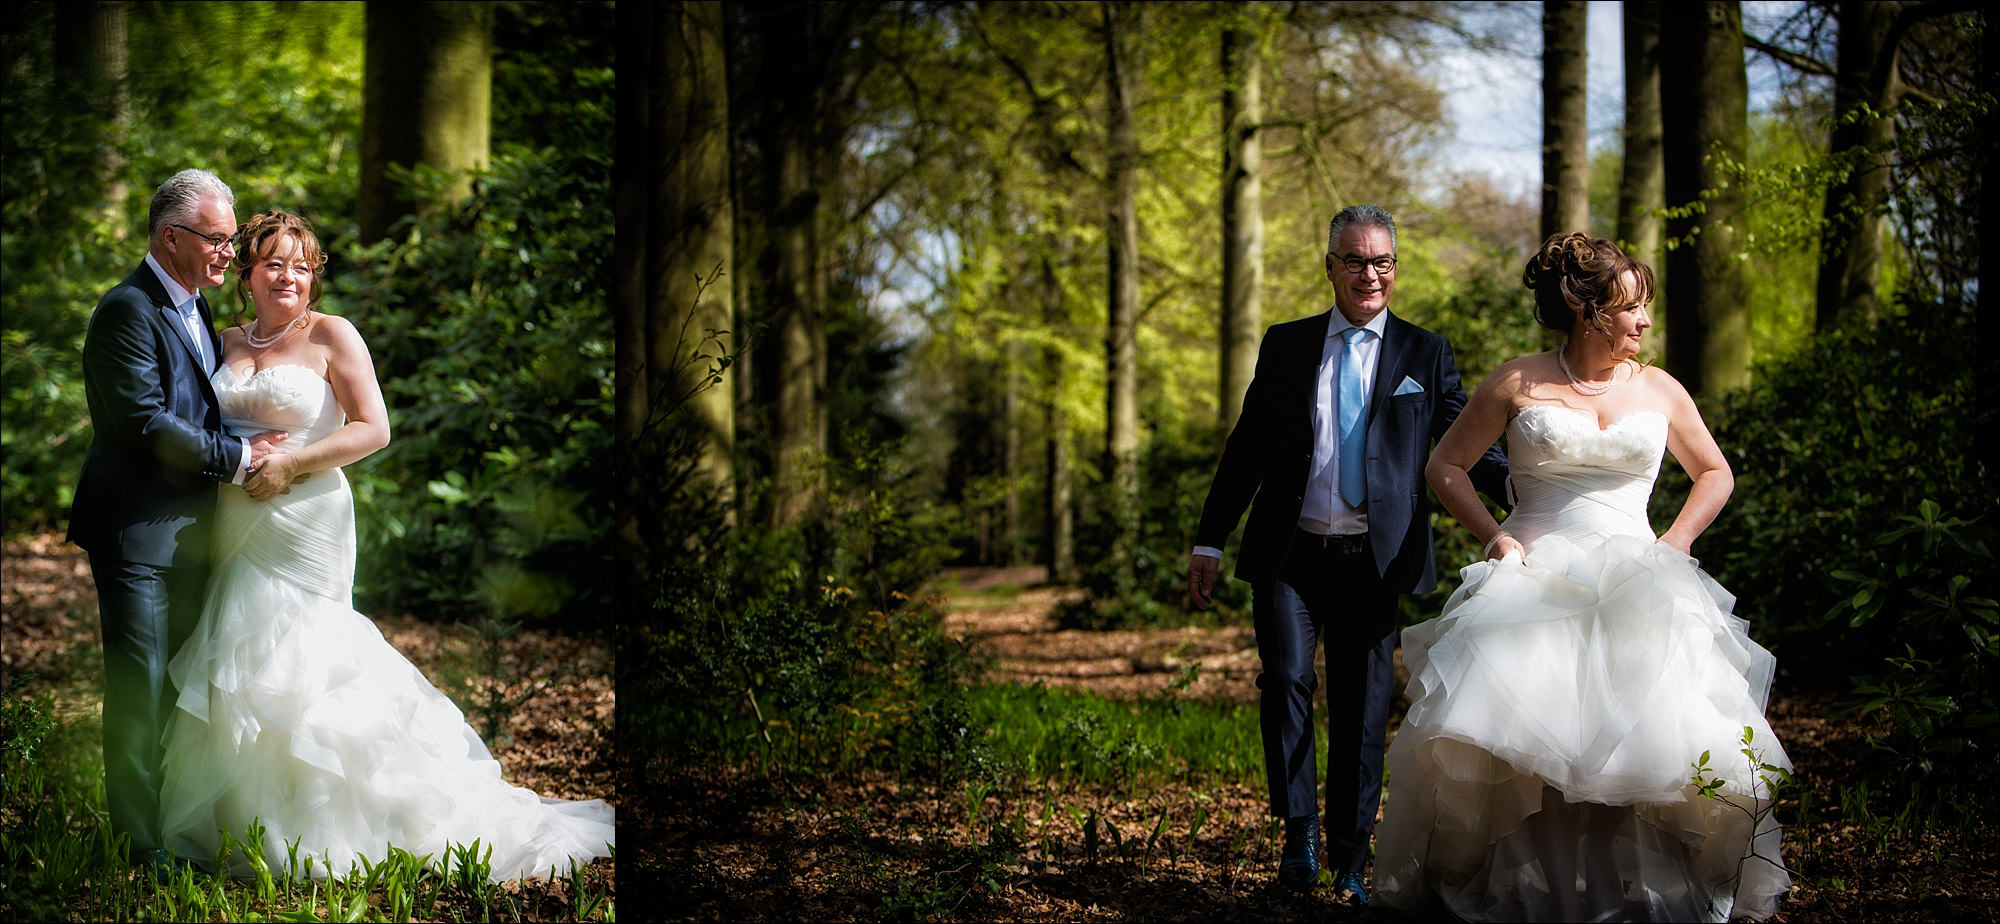 wedding photographer dublin david duignan photography real weddings Ireland 34